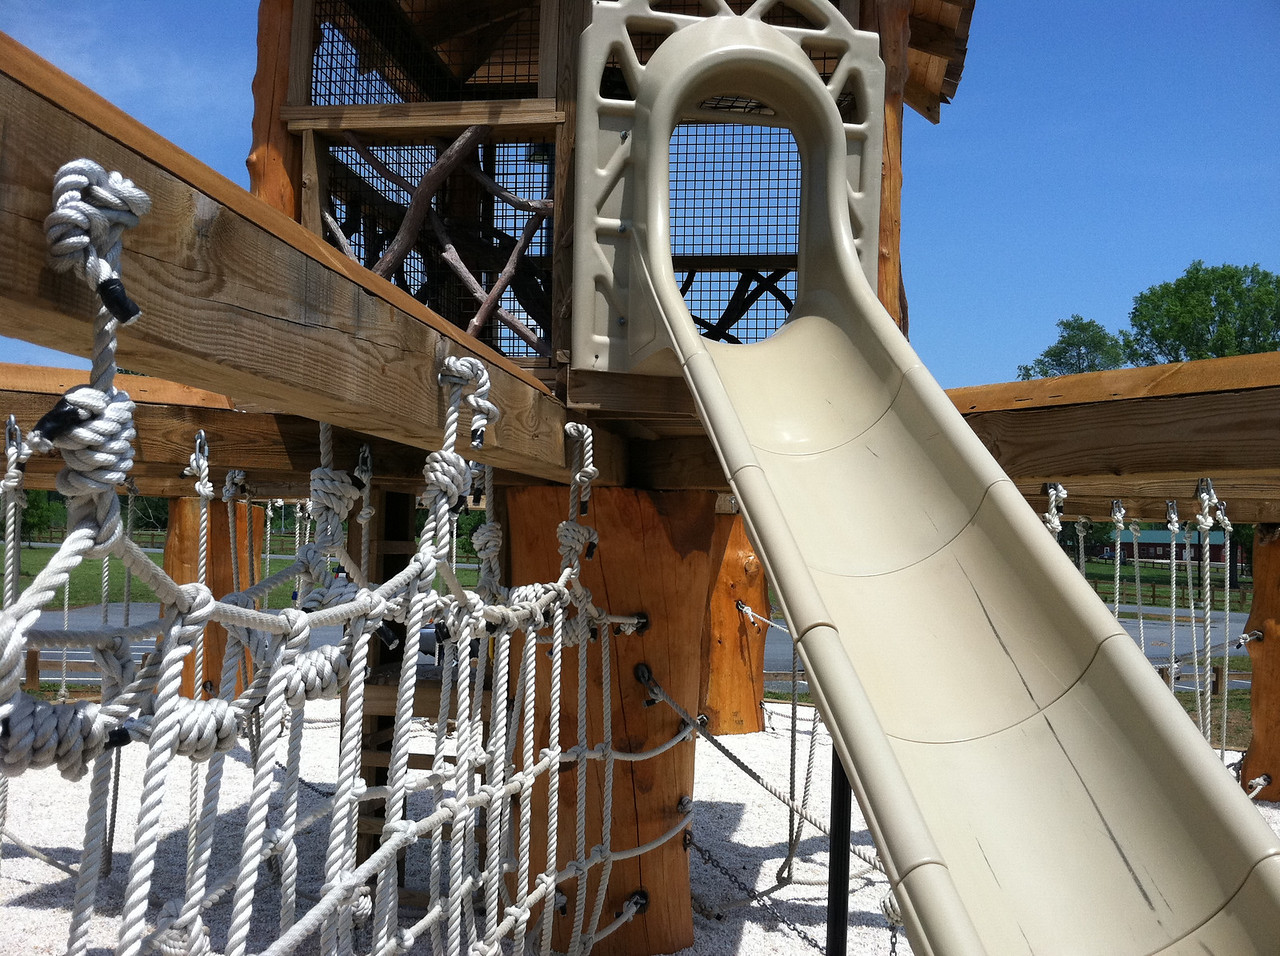 Slide from tree house